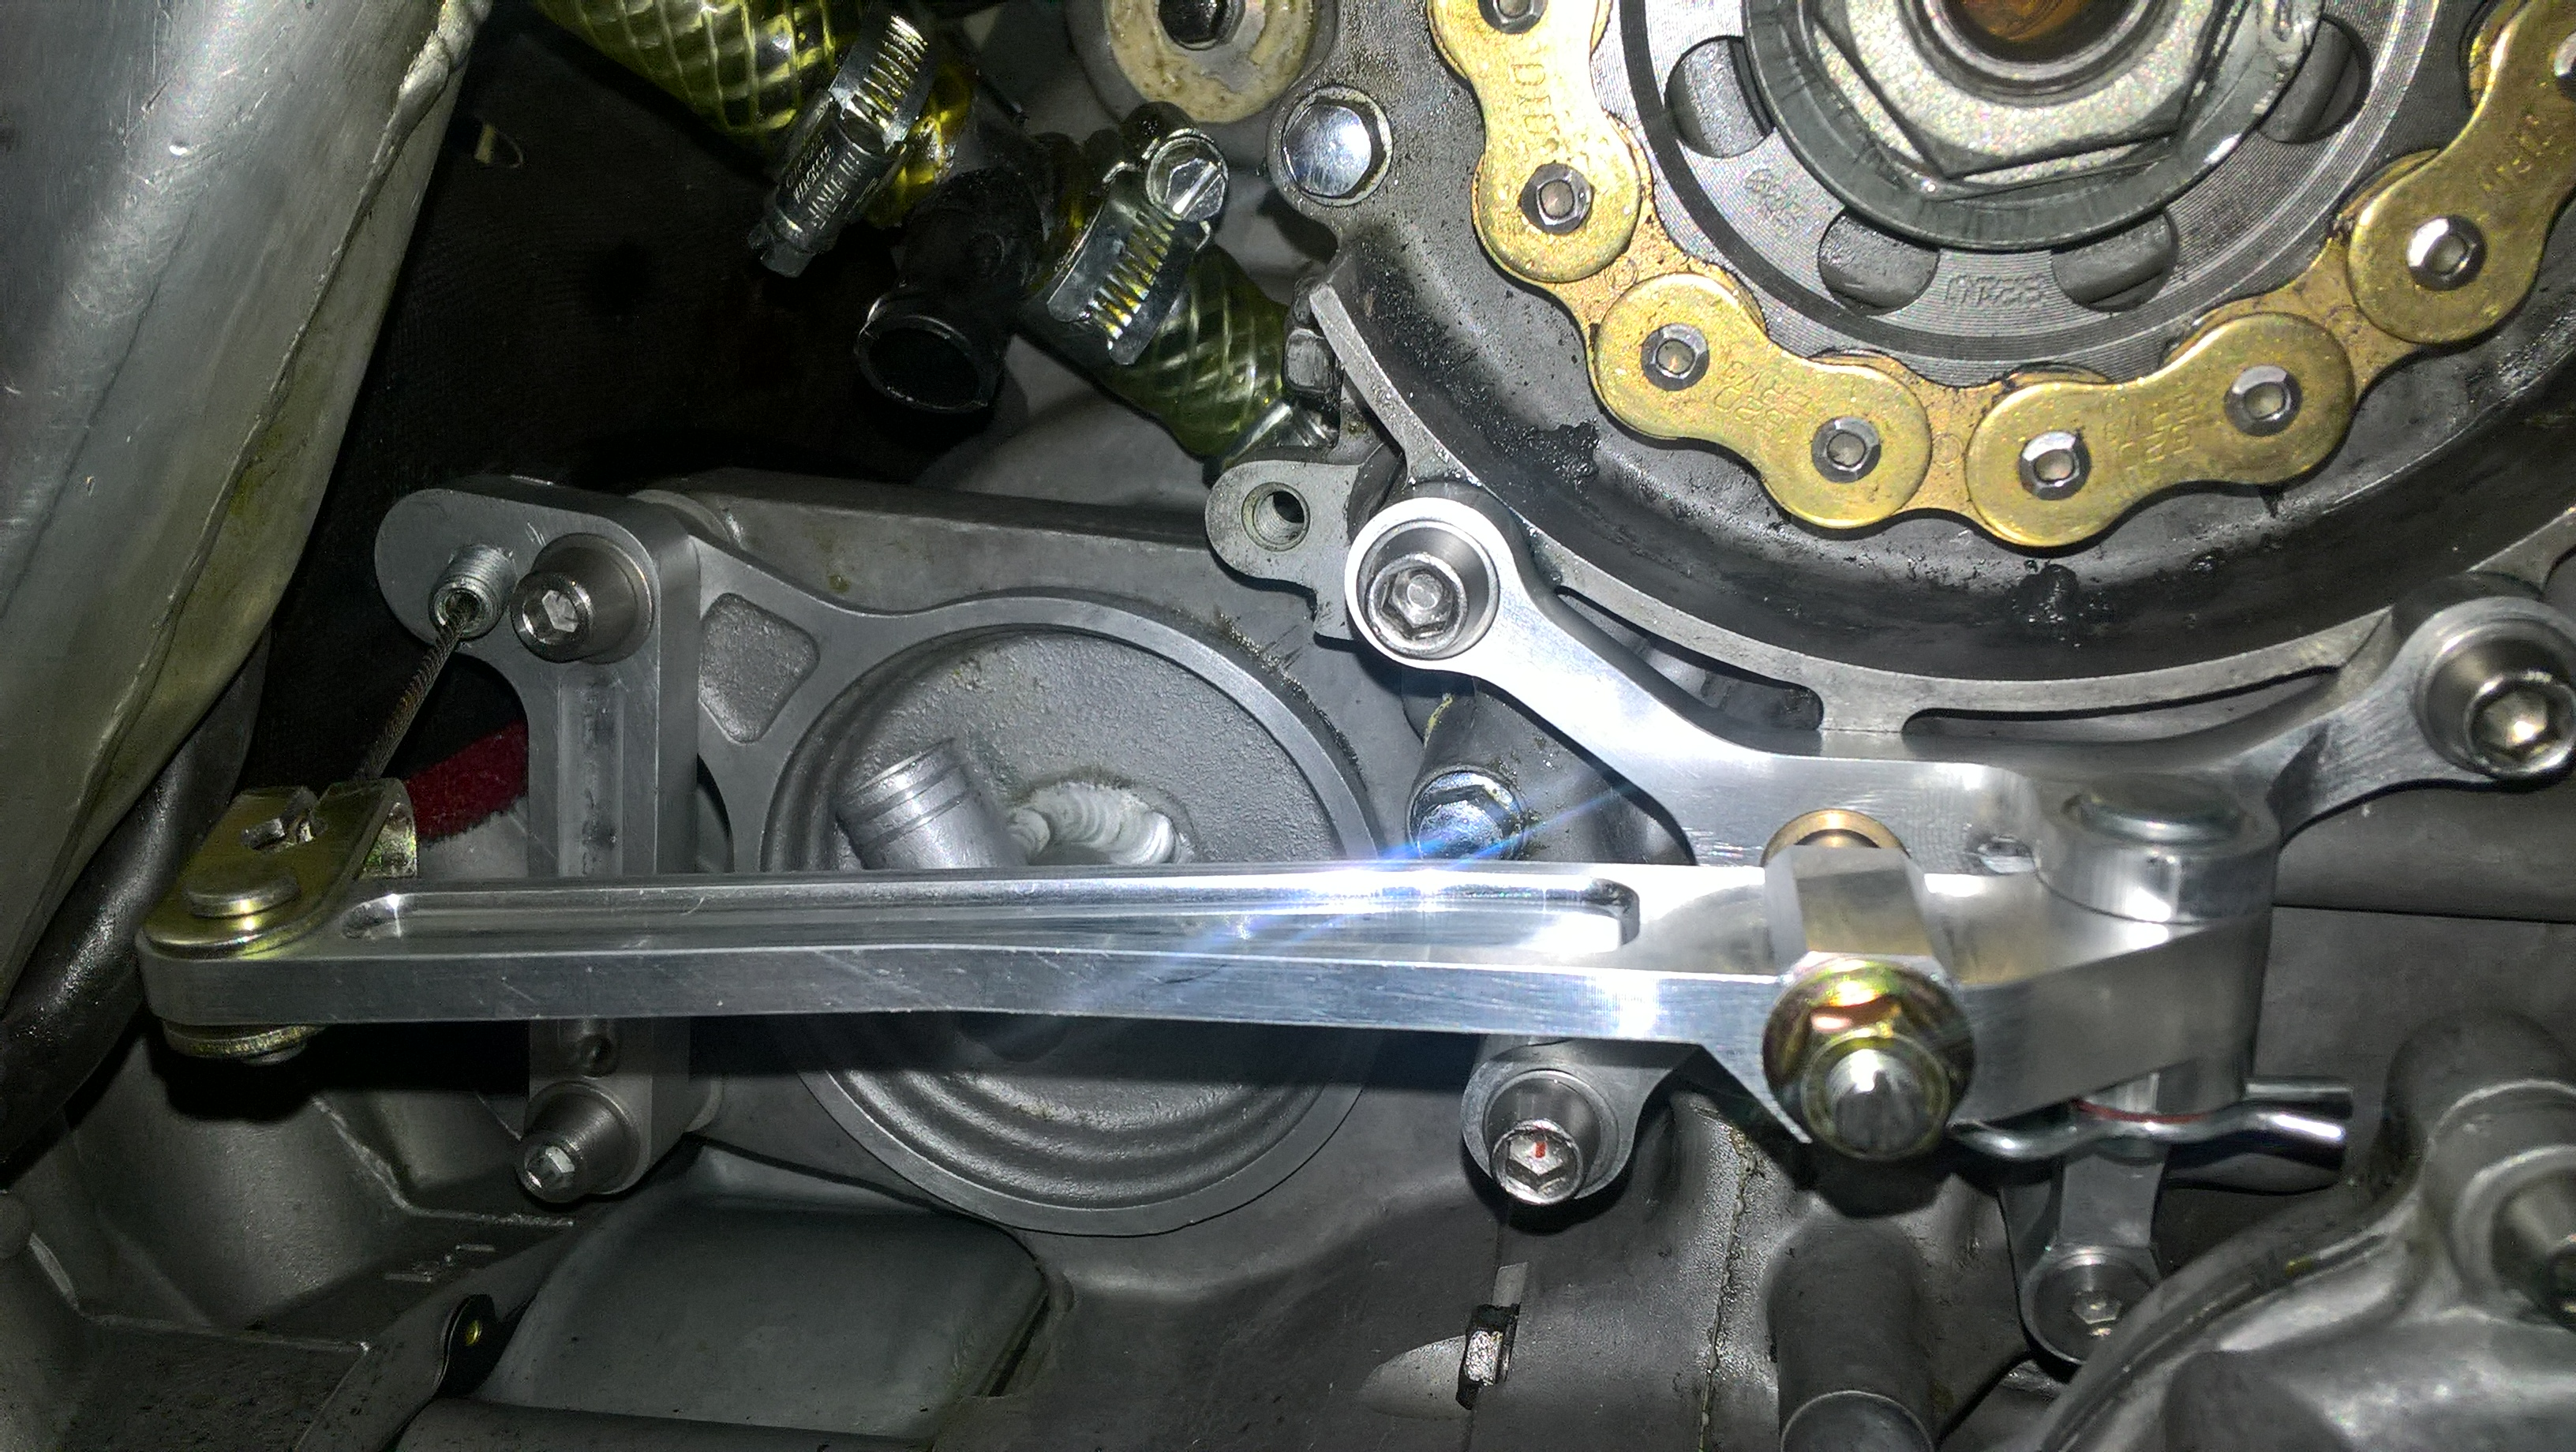 Cable Clutch ZXR750 Bike Pic 3